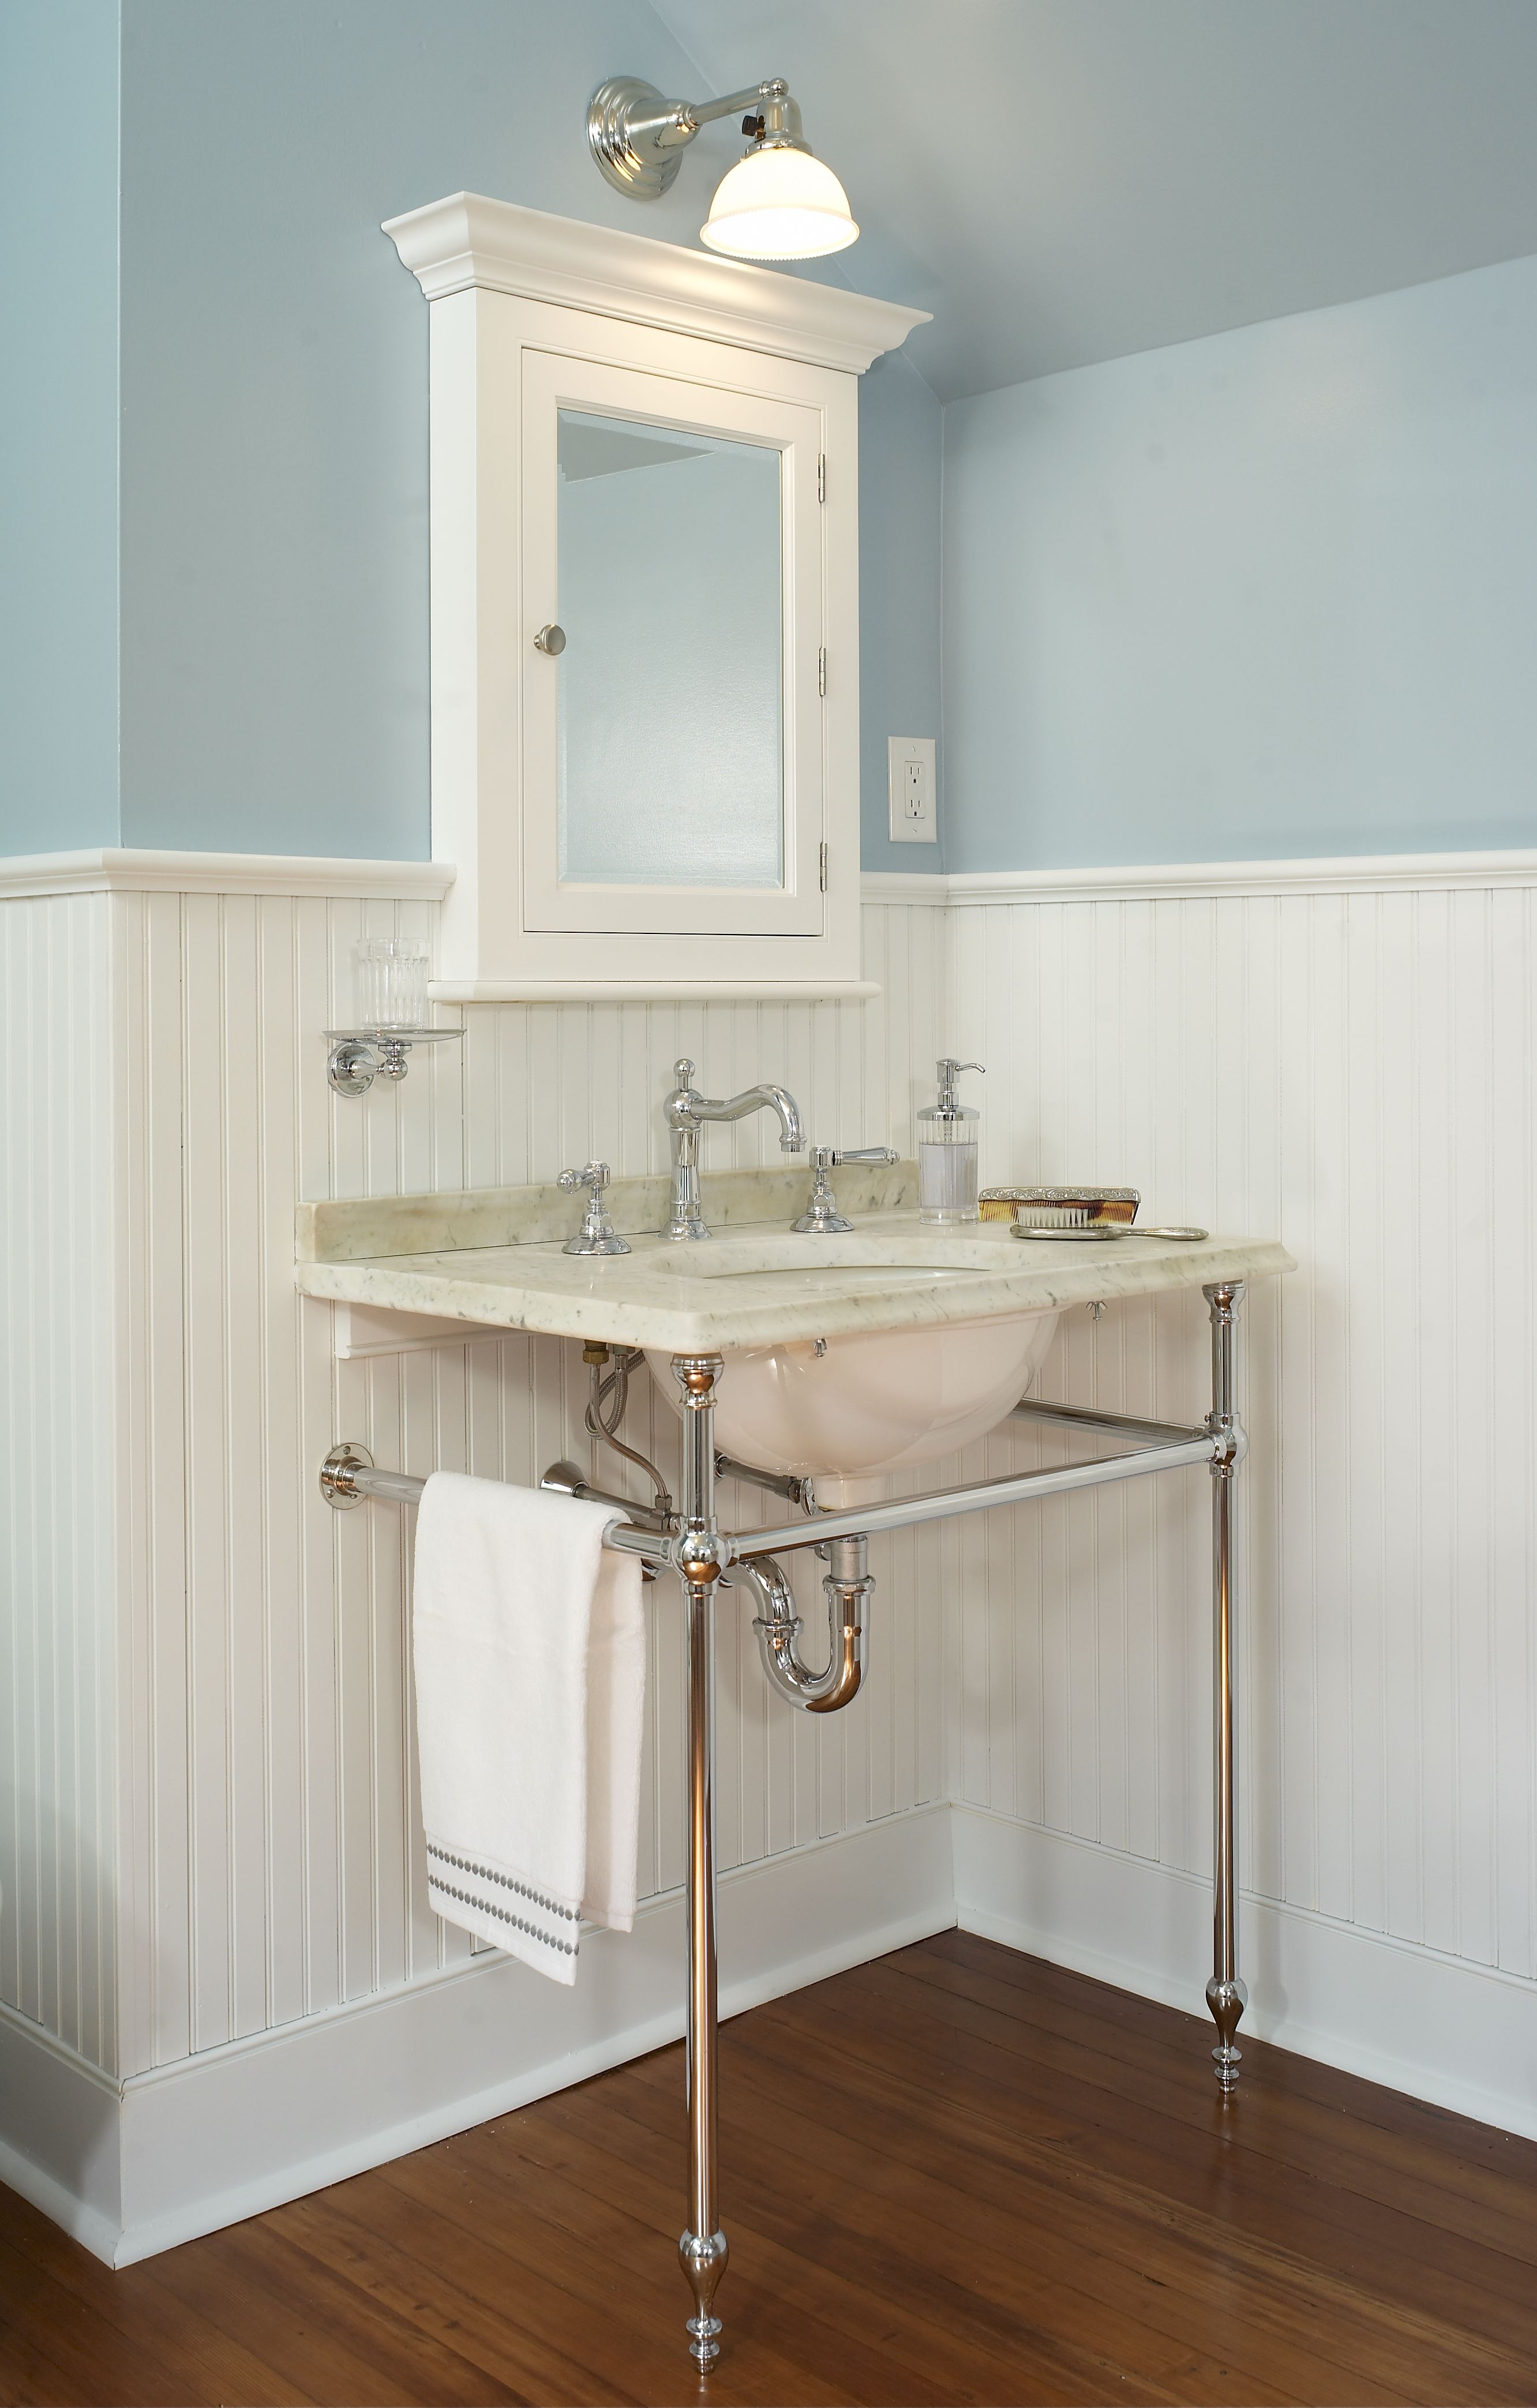 Original Vintage Bathrooms Designs & Remodeling ideas in ...